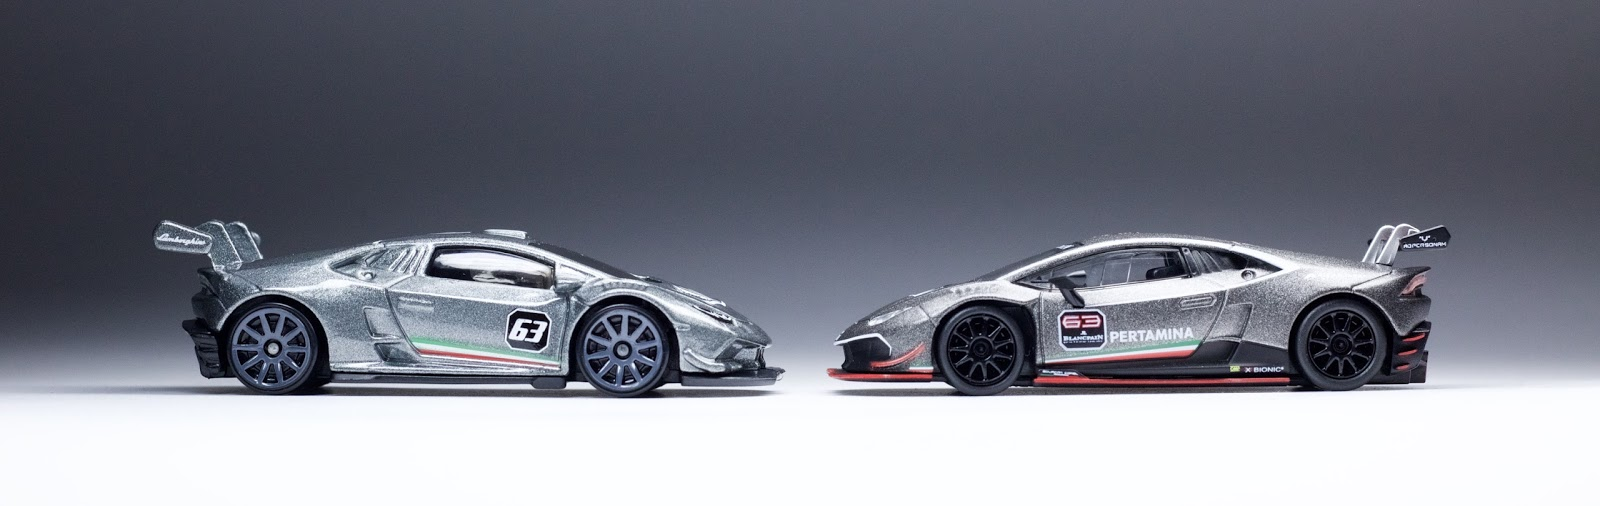 hot wheels kyosho unleash a pair of brilliant lamborghini hurac n lp 62. Black Bedroom Furniture Sets. Home Design Ideas